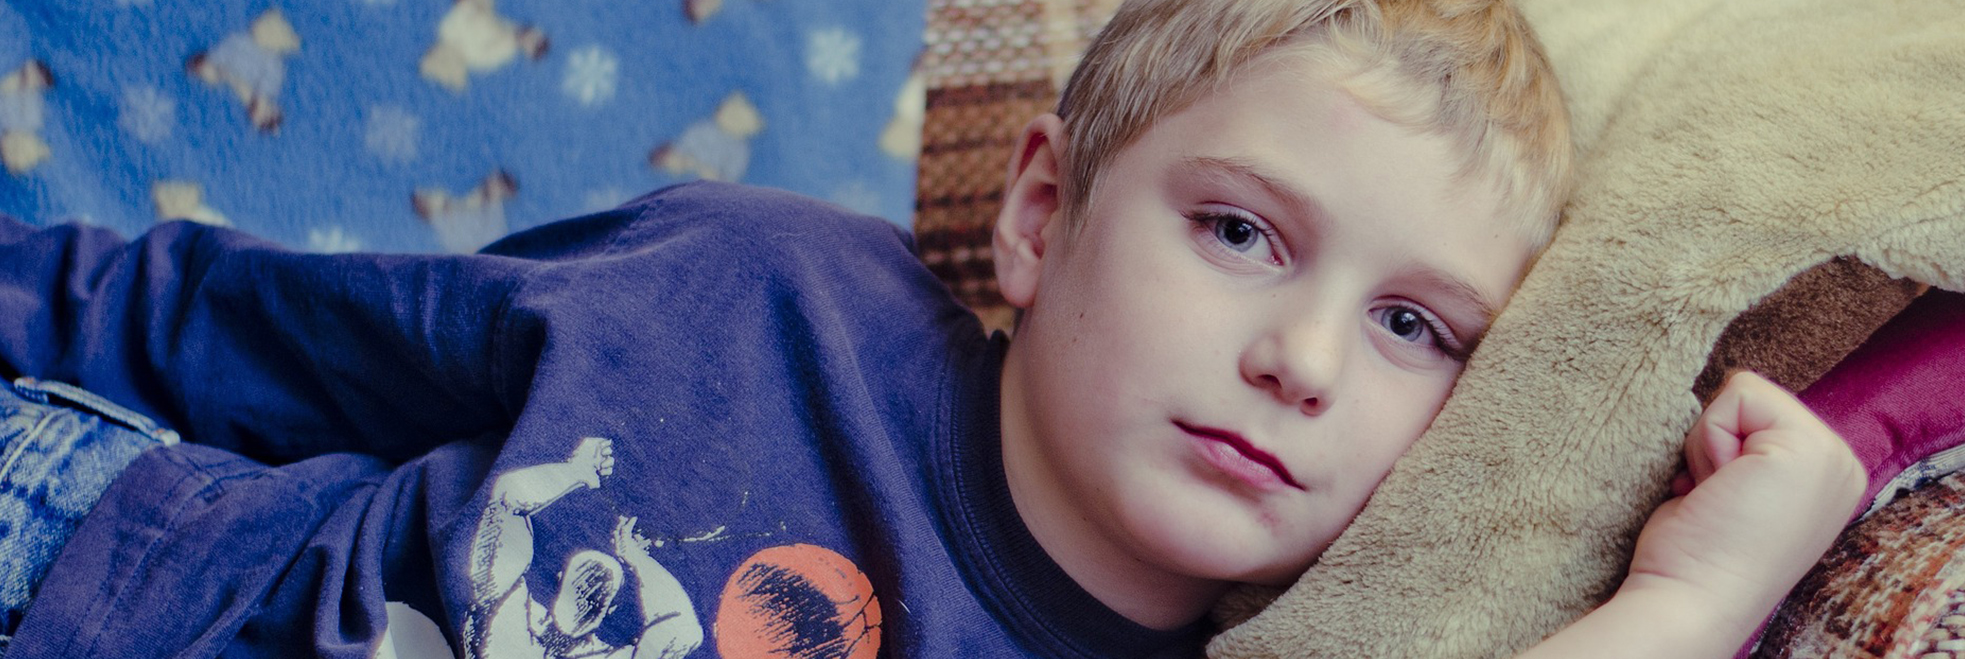 young blonde boy looking unhappy on couch